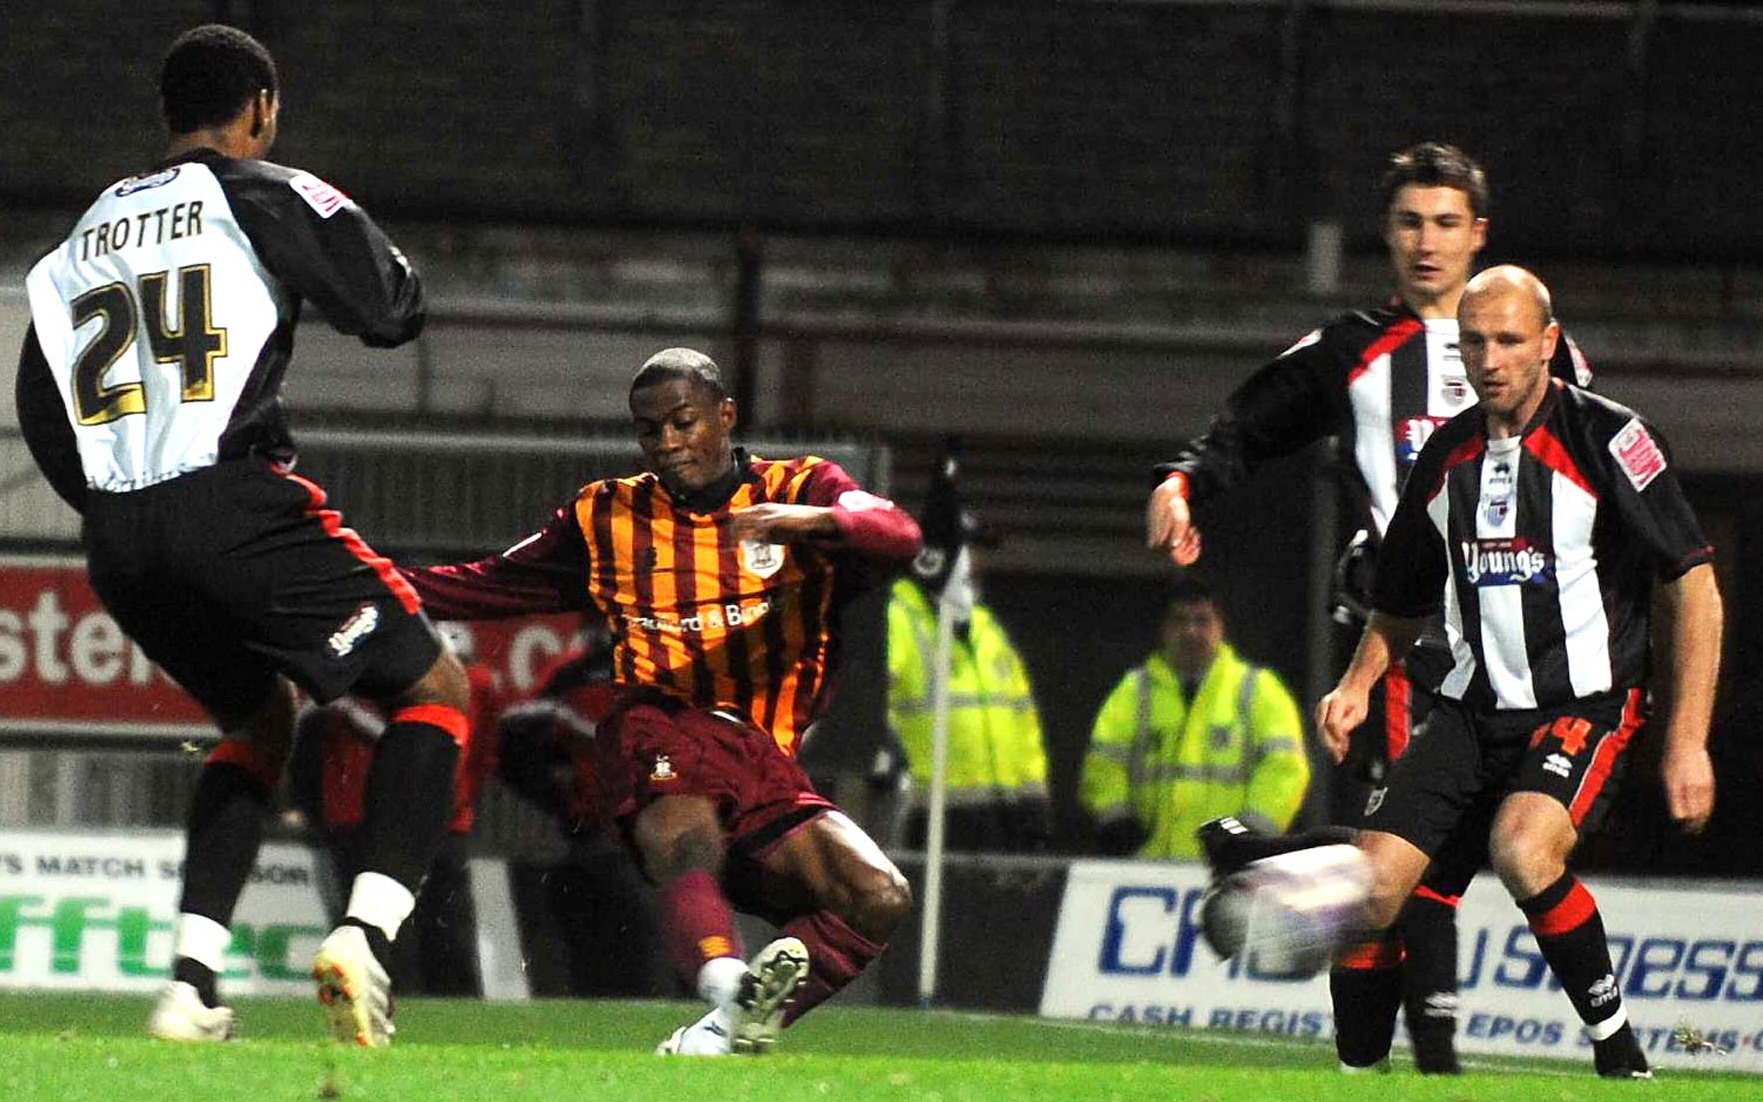 Omar Daley, pictured scoring against Grimsby, is enjoying life on the left wing